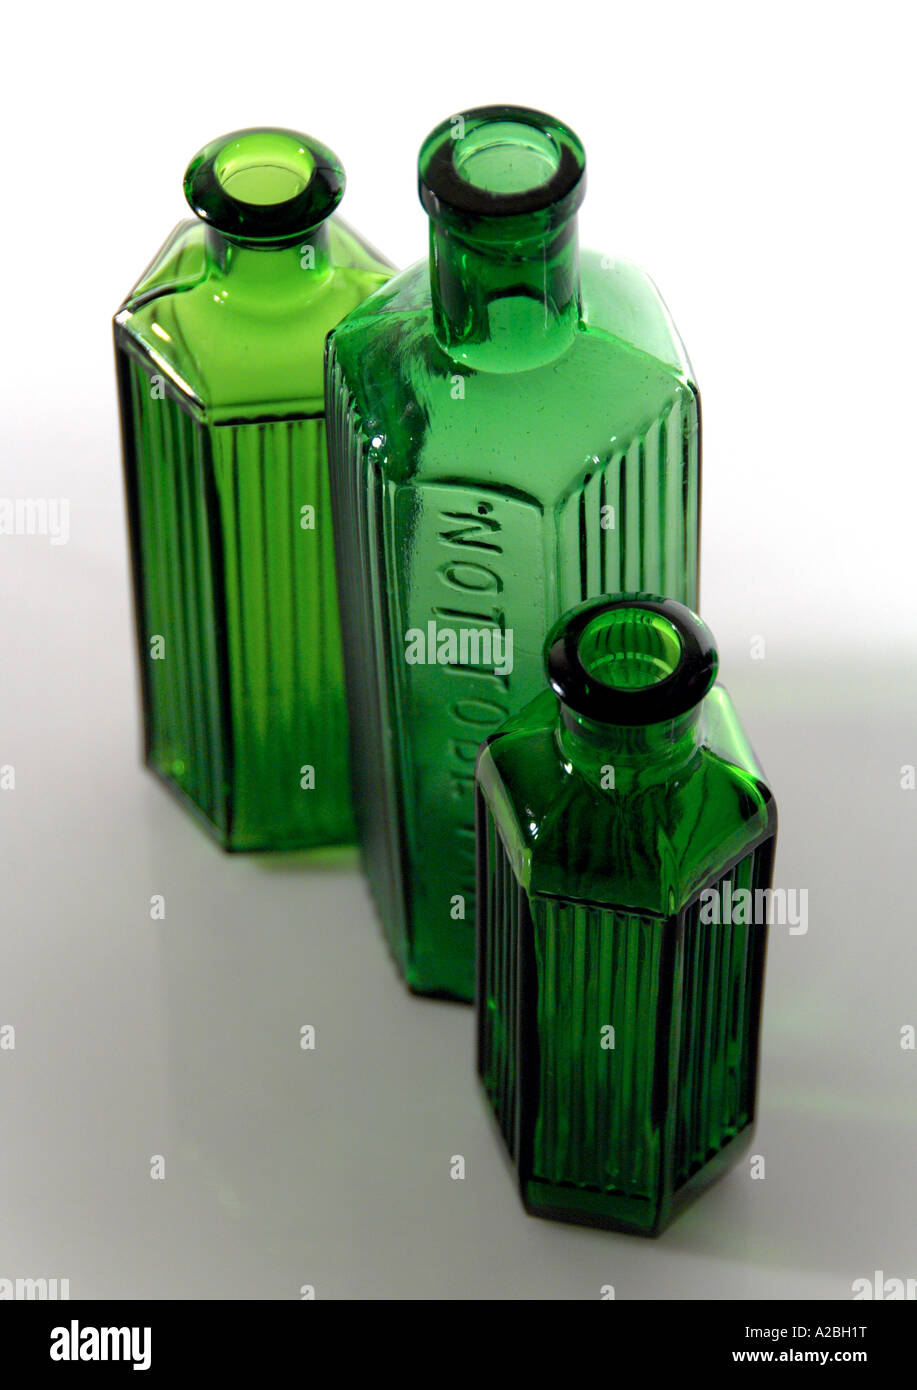 Old Vintage Ridged Victorian Poison Bottles - Stock Image